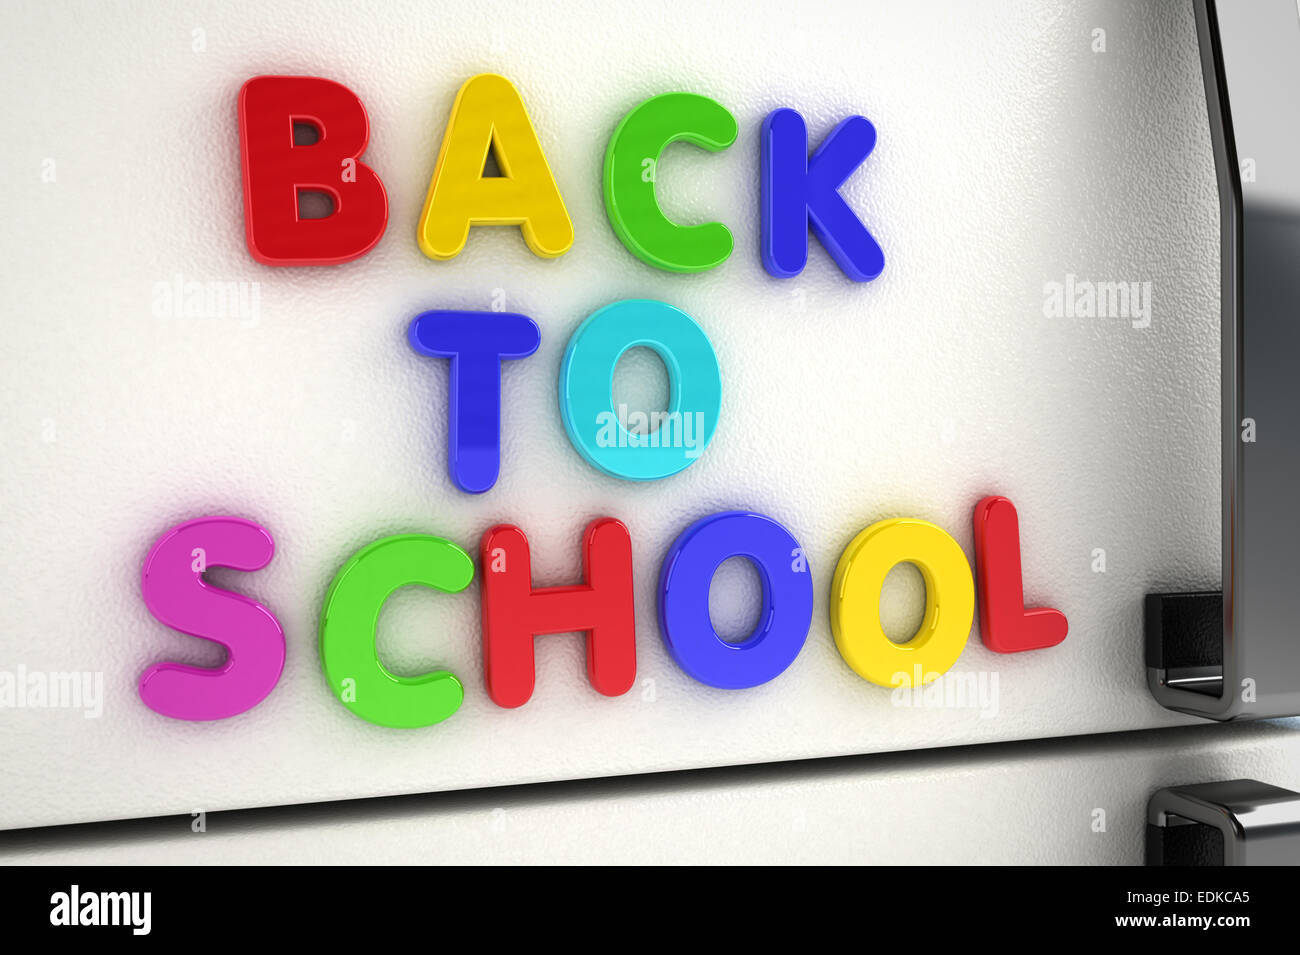 hight resolution of back to school written on a refrigerator door with magnet letters stock image